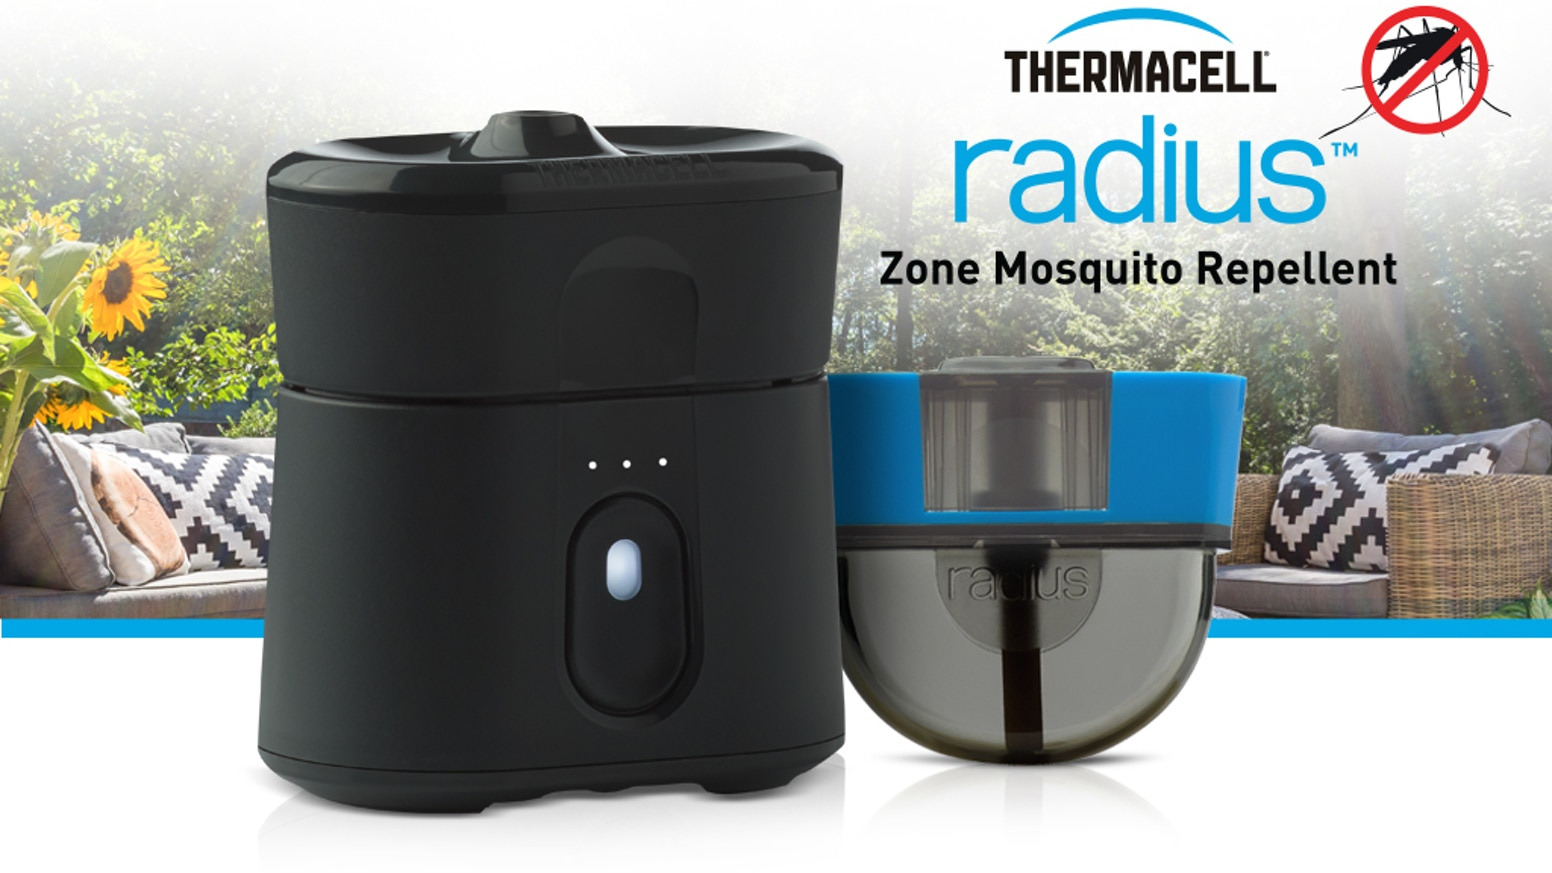 Introducing Radius, the world's first rechargeable, EPA-approved, zone mosquito repellent.